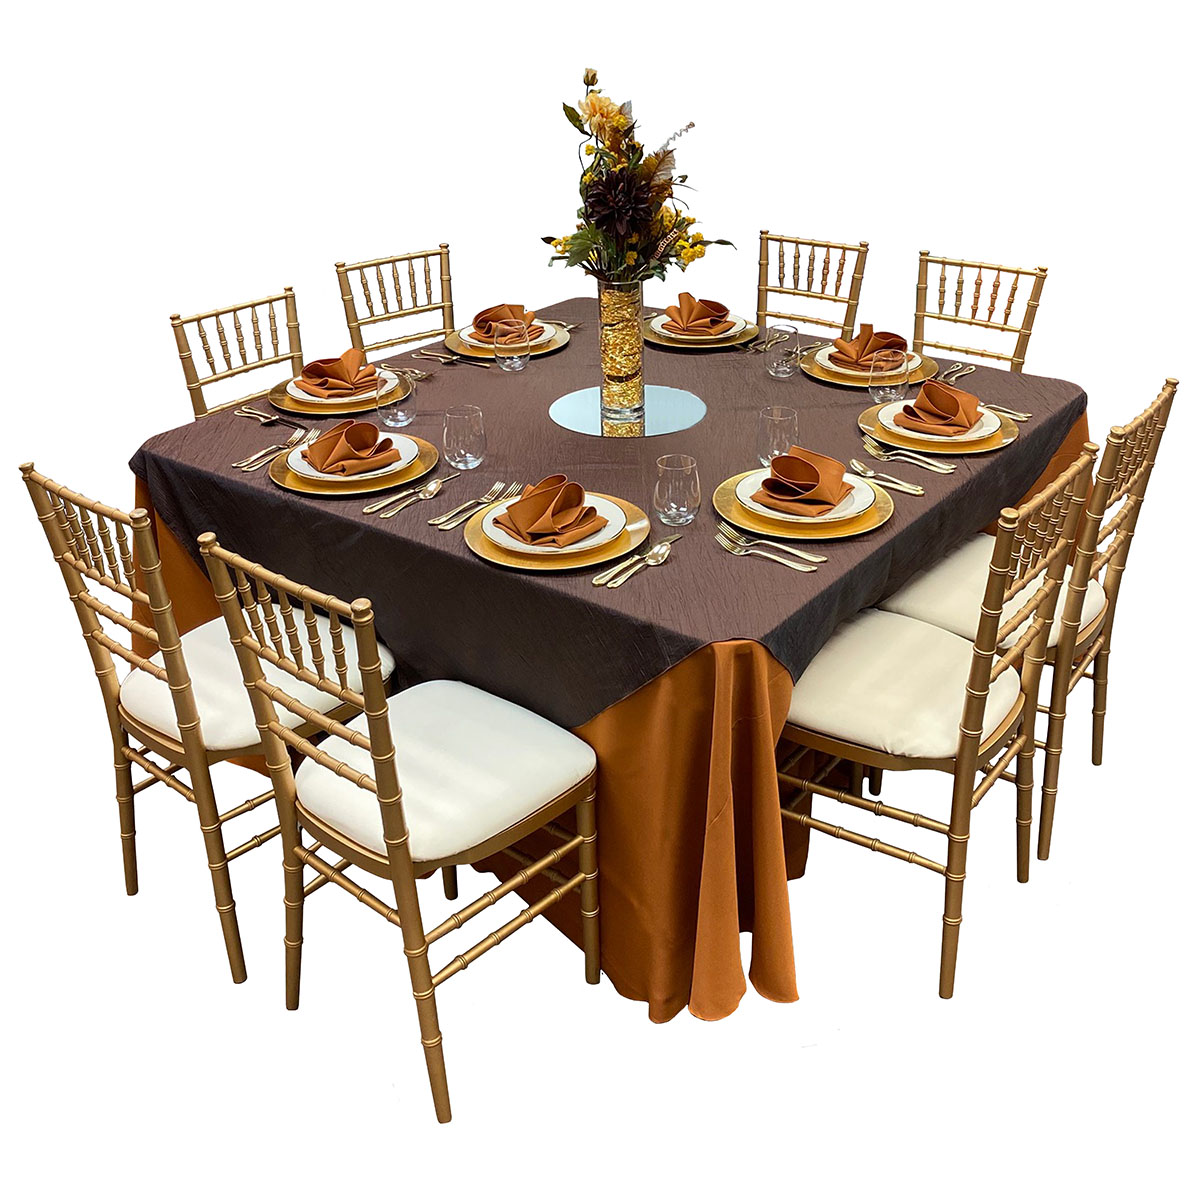 "Table 60x60 Wood Topped With 120"" Round Copper Solid Tablecover, 81x81 Krinkle Brown Topper, Brushed Gold Chargers, Beige With Gold Band China, Gold Plated Flatware, Stemless Wine White 17oz Glasses, Copper Solid Napkins, 4x12 Cylinder Vase, 14"" Round Mirror (Flowers Not Included)"